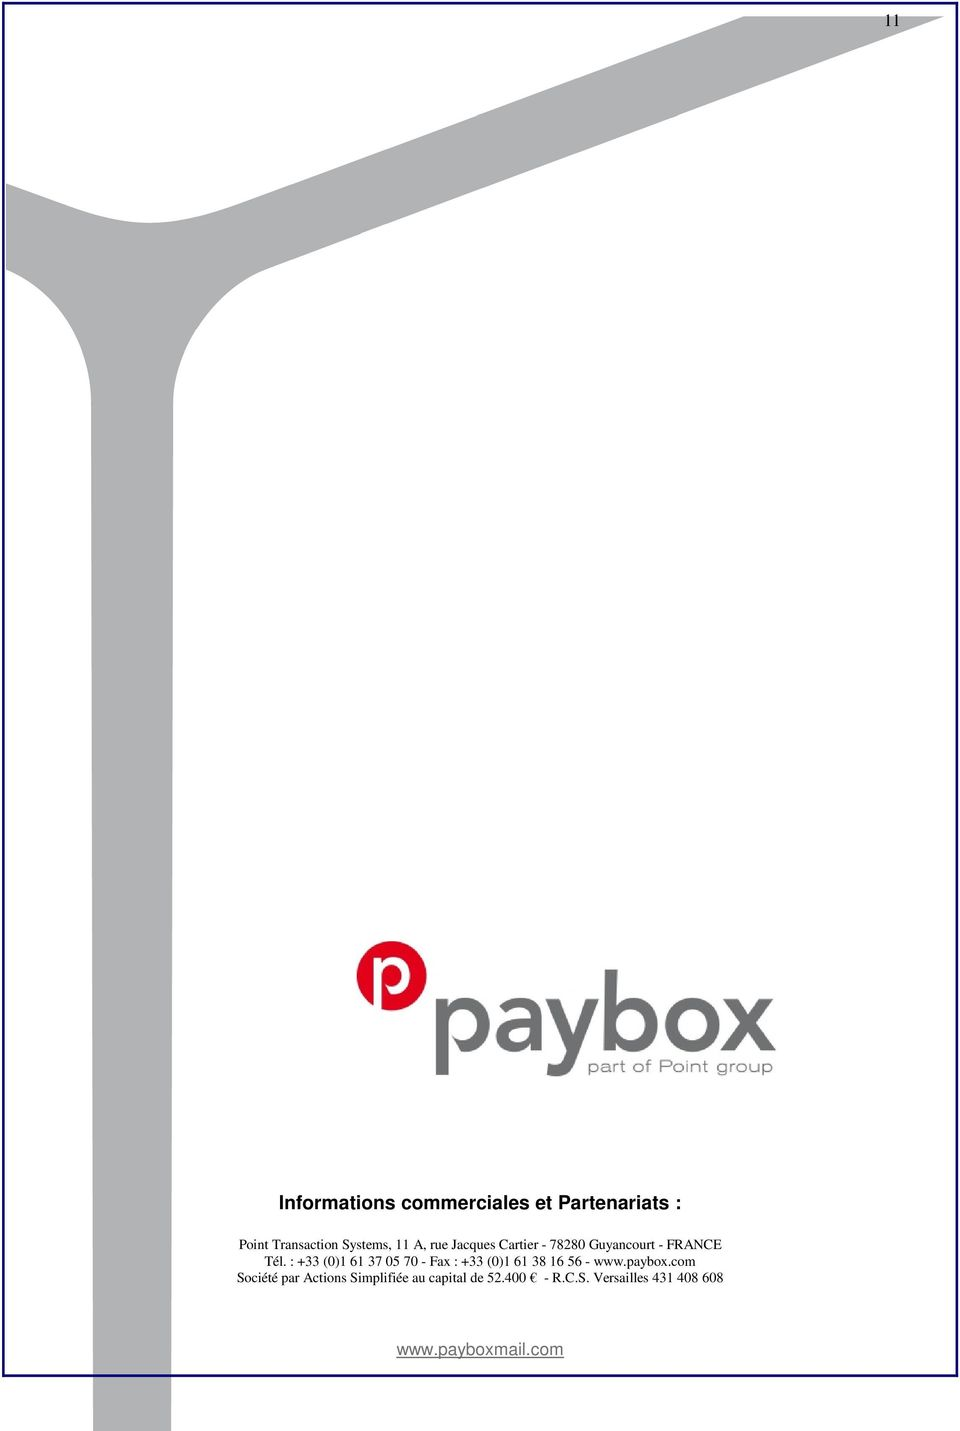 : +33 (0)1 61 37 05 70 - Fax : +33 (0)1 61 38 16 56 - www.paybox.